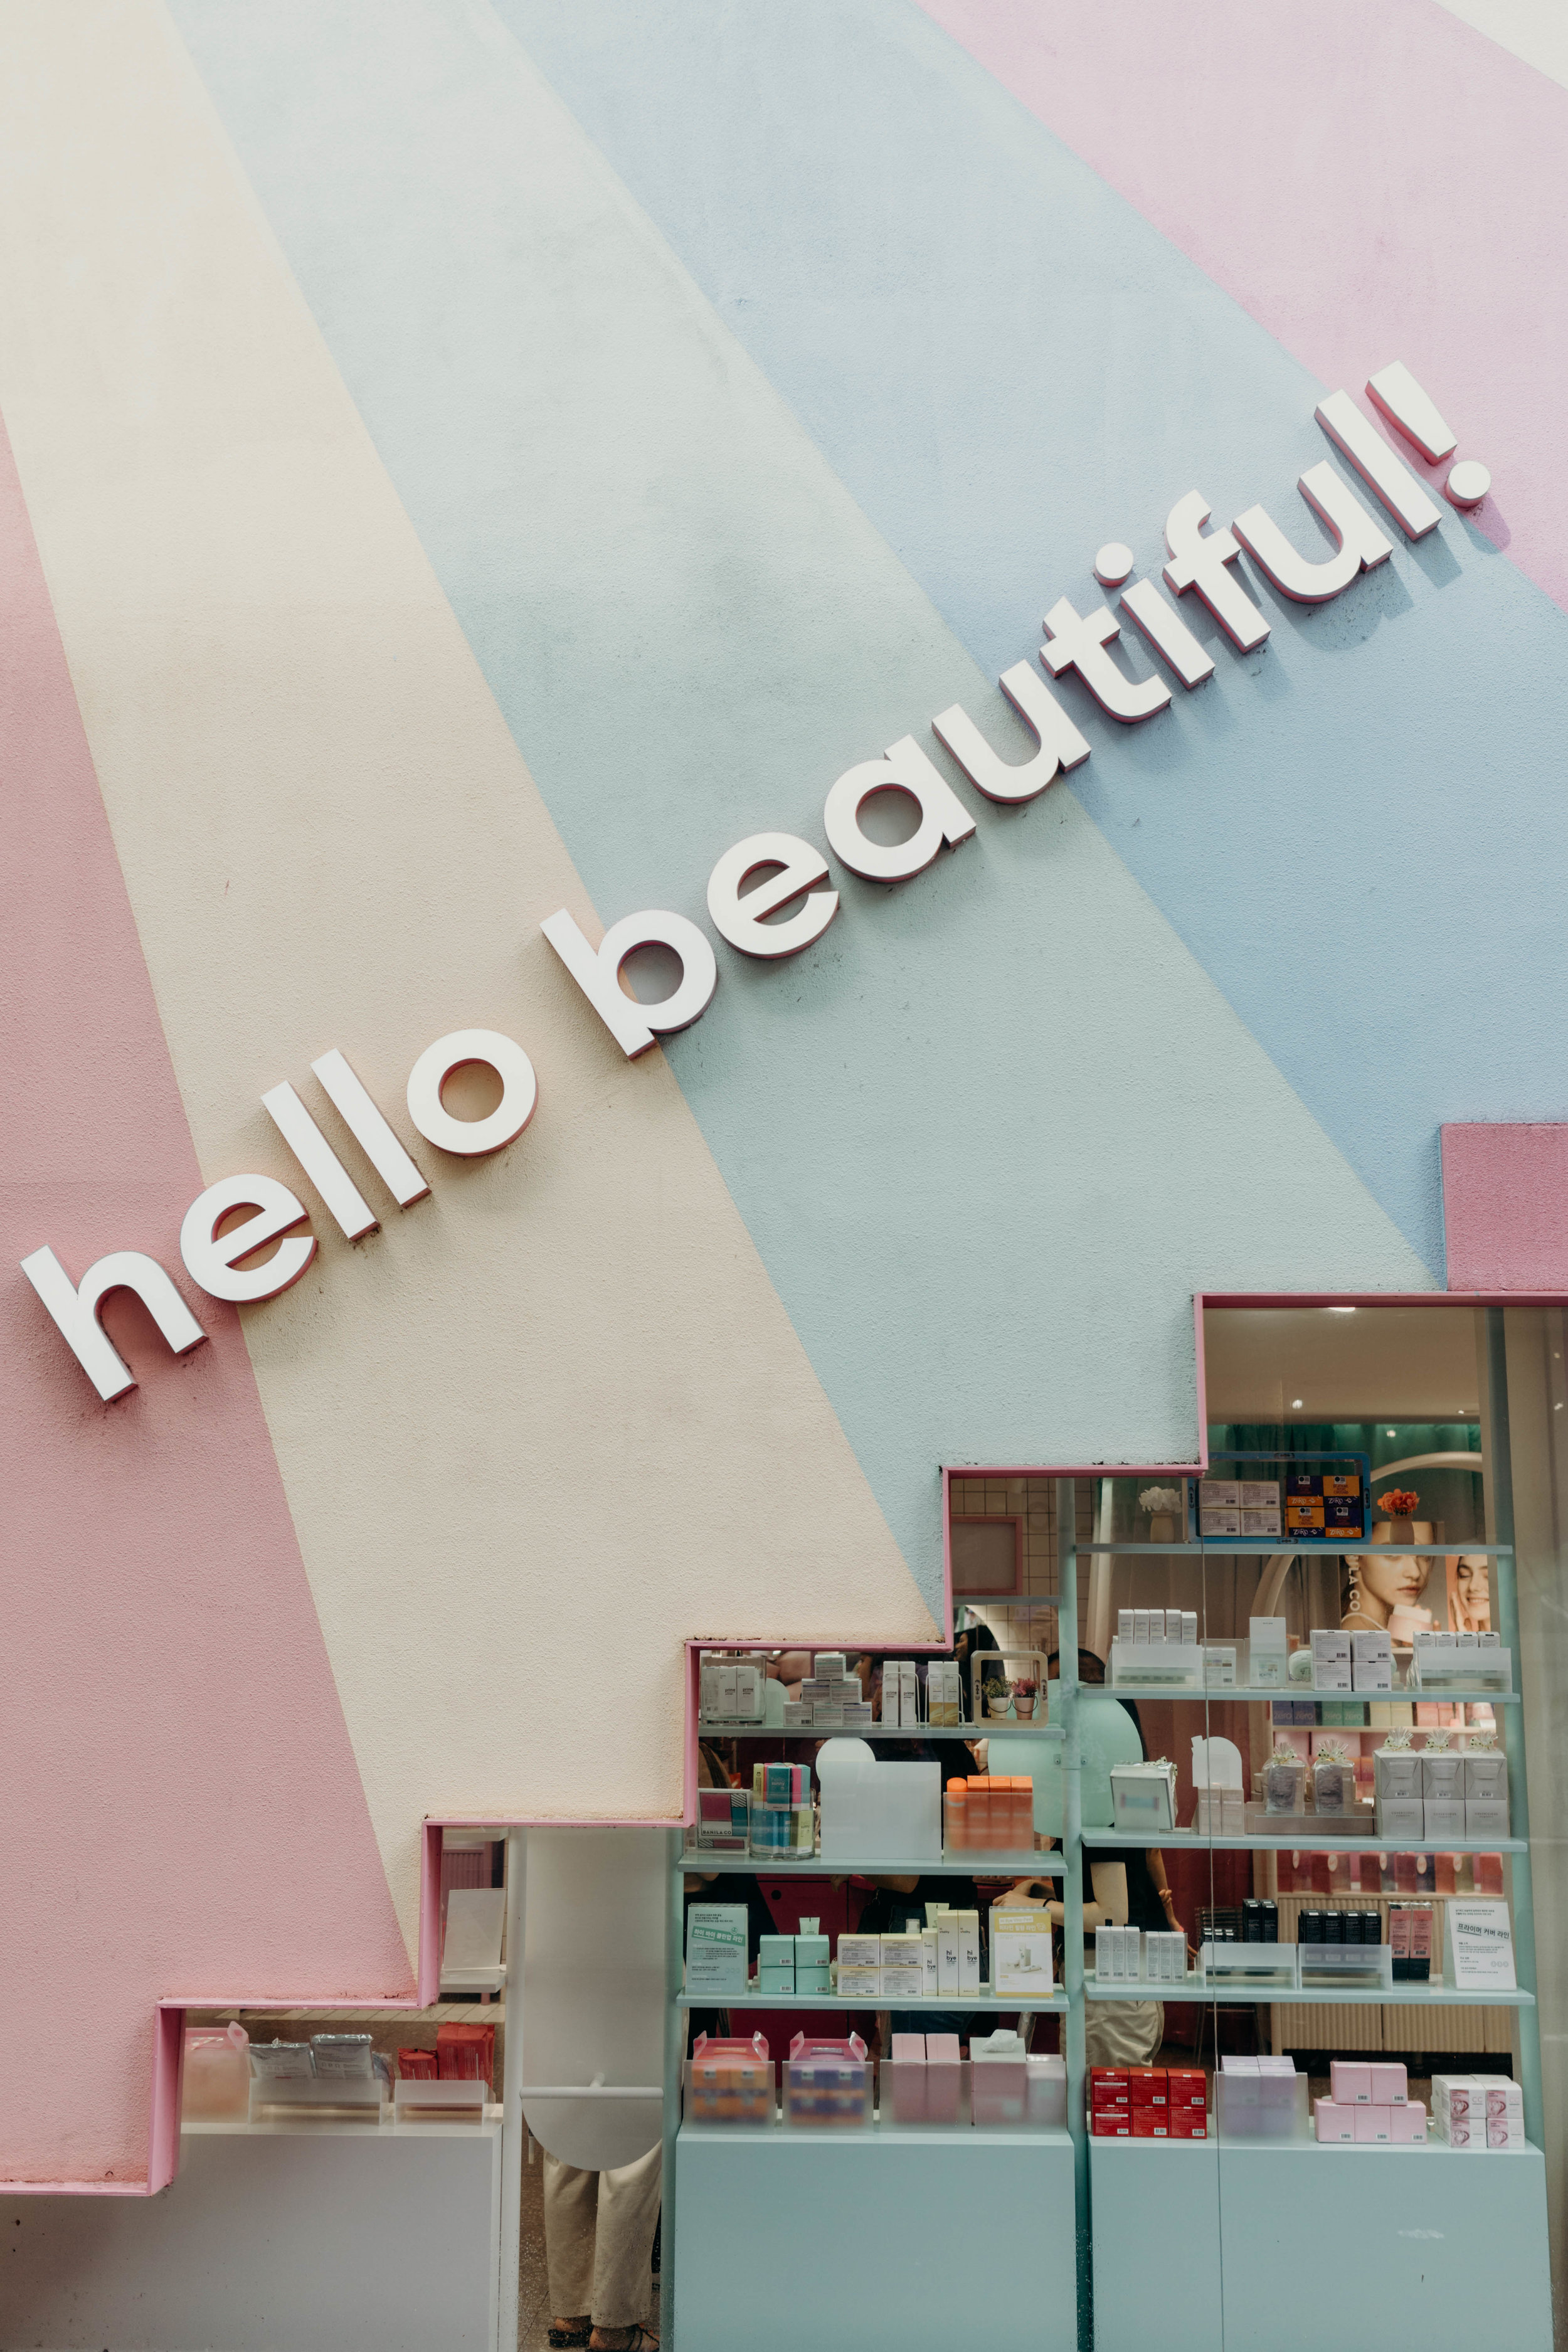 A Special Custom Beauty Experience: The Etude House Color Factory in Myeong-dong | On the Street Where We Live ( aretherelilactrees.com )  hello beautiful, Korean beauty, Kbeauty, custom beauty, Etude House, Color Factory, lipstick, Myeong-dong, Seoul, South Korea